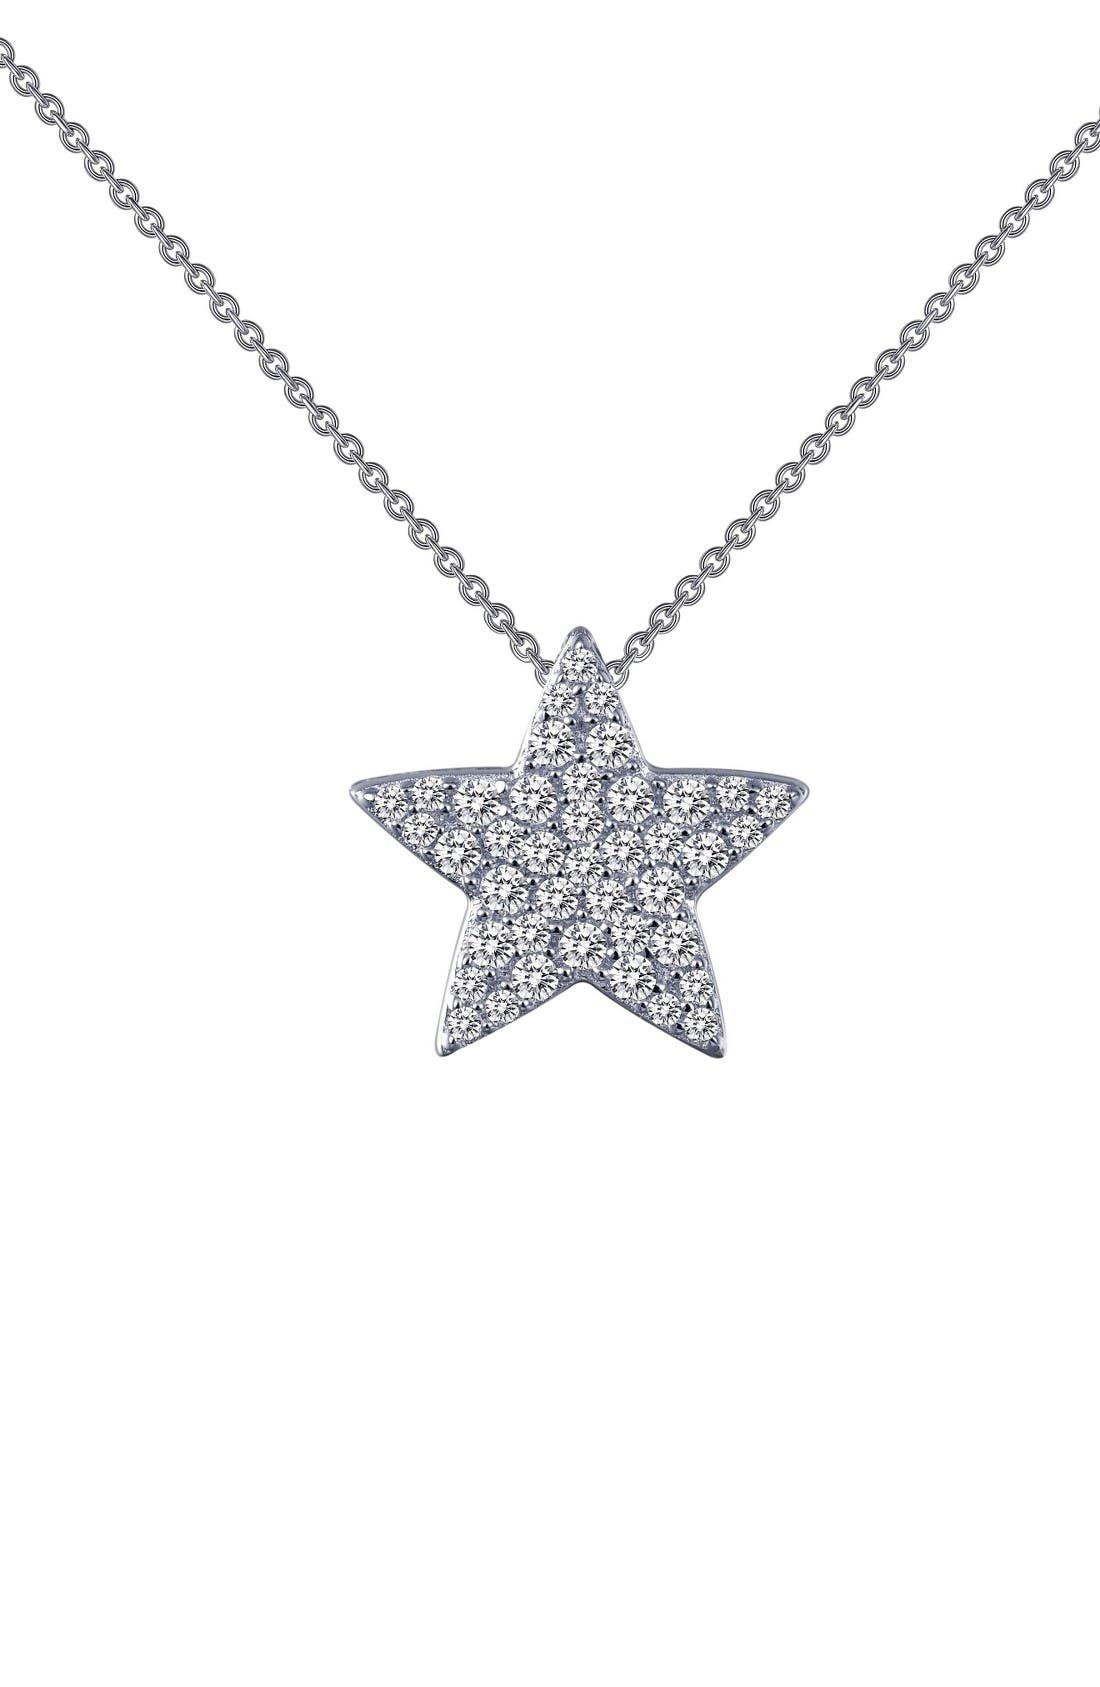 Alternate Image 1 Selected - Lafonn Simulated Diamond Star Pendant Necklace